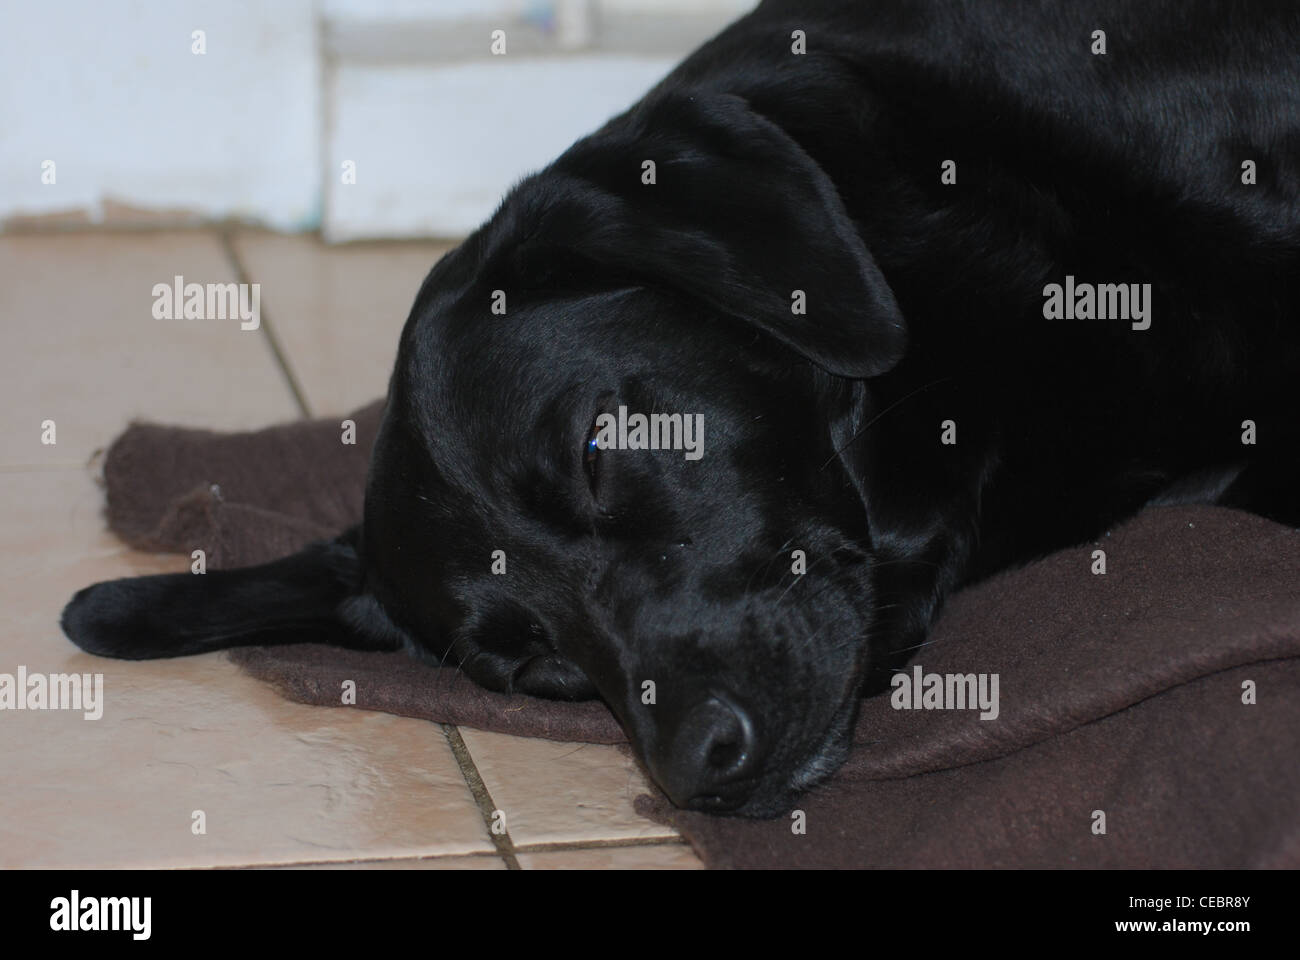 Sleeping black Labrador dog - Stock Image